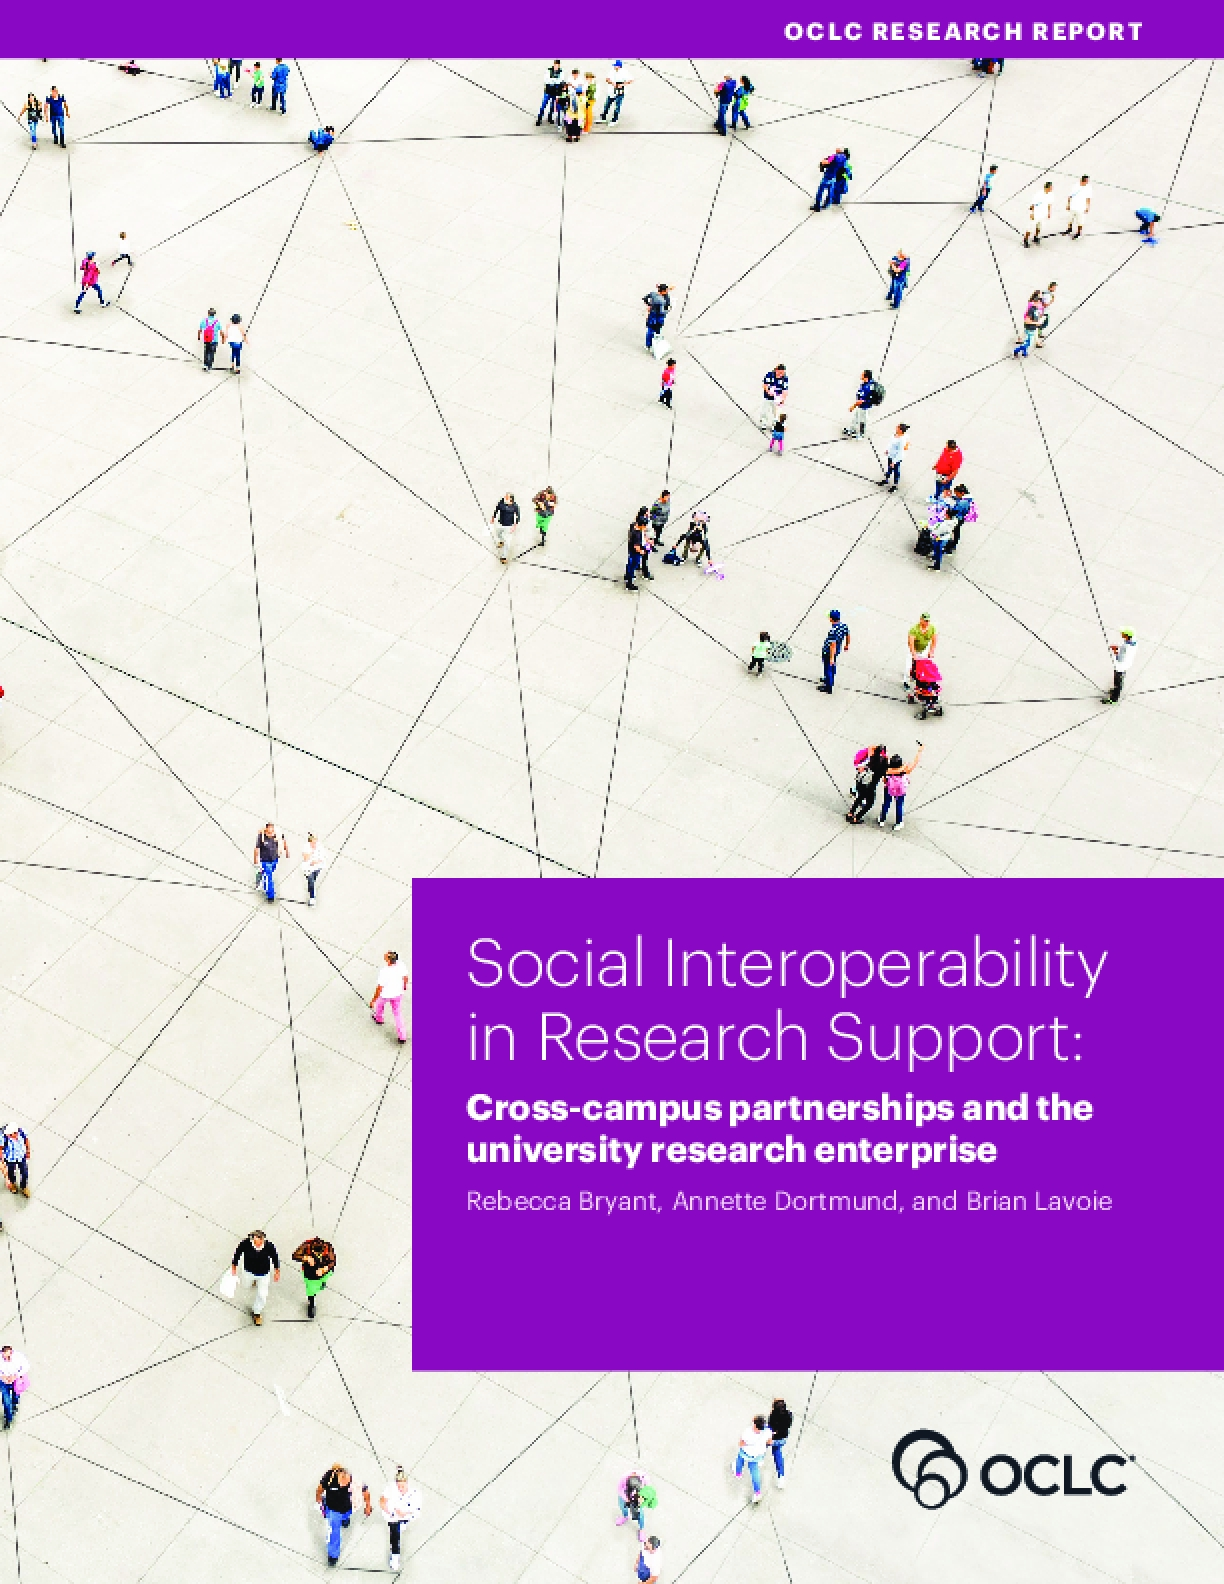 Social Interoperability in Research Support: Cross-campus Partnerships and the University Research Enterprise